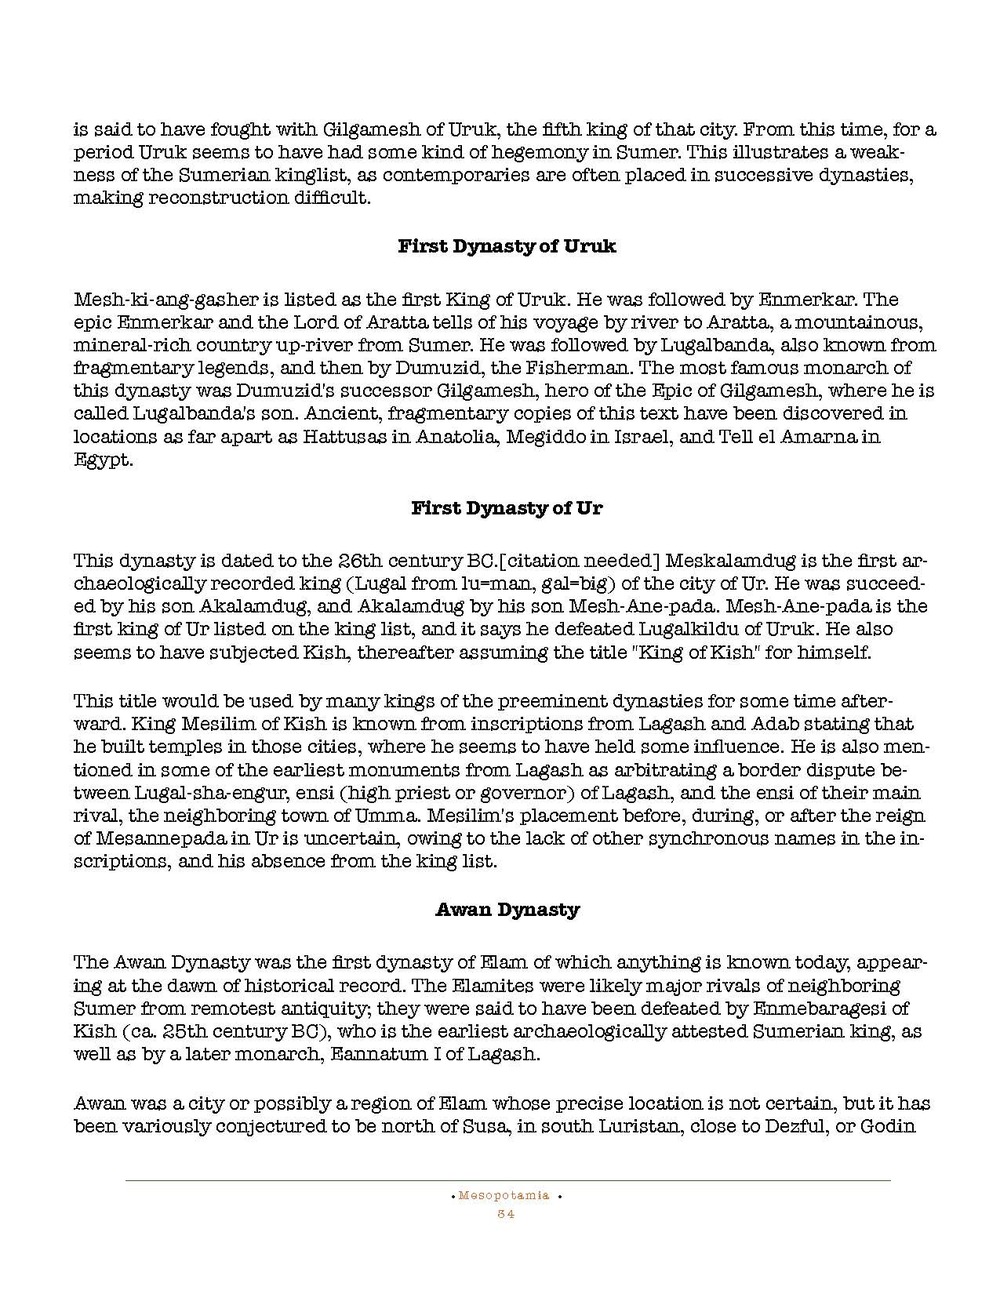 HOCE- Fertile Crescent Notes_Page_034.jpg